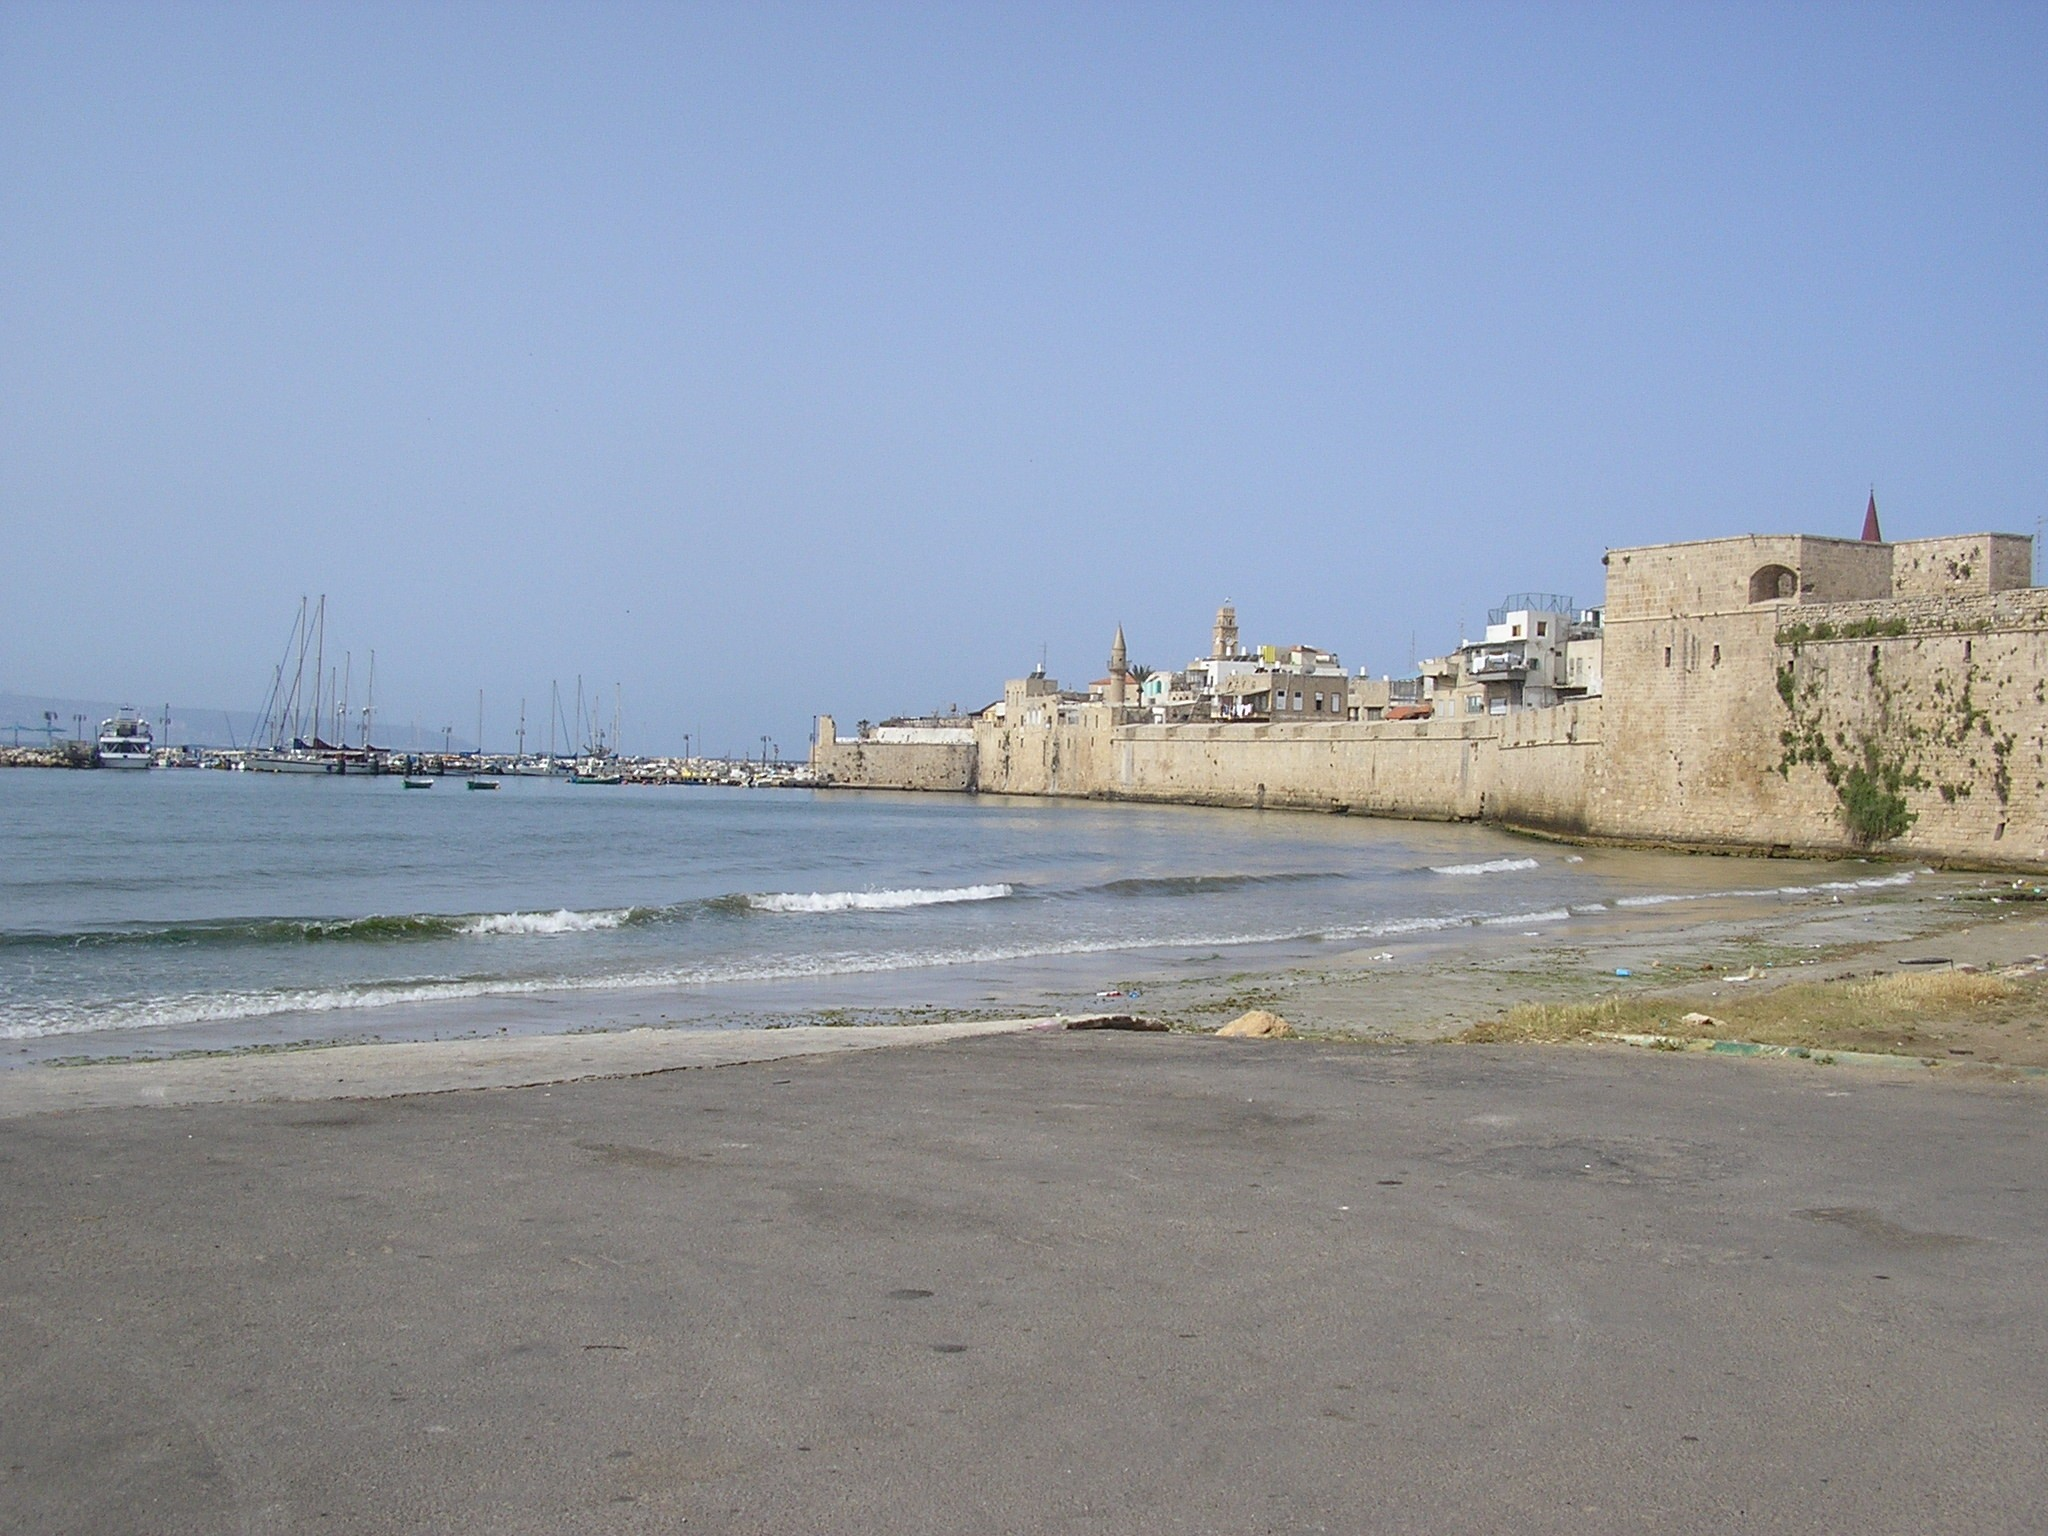 Acre Israel  city images : Acre, Israel Religion wiki